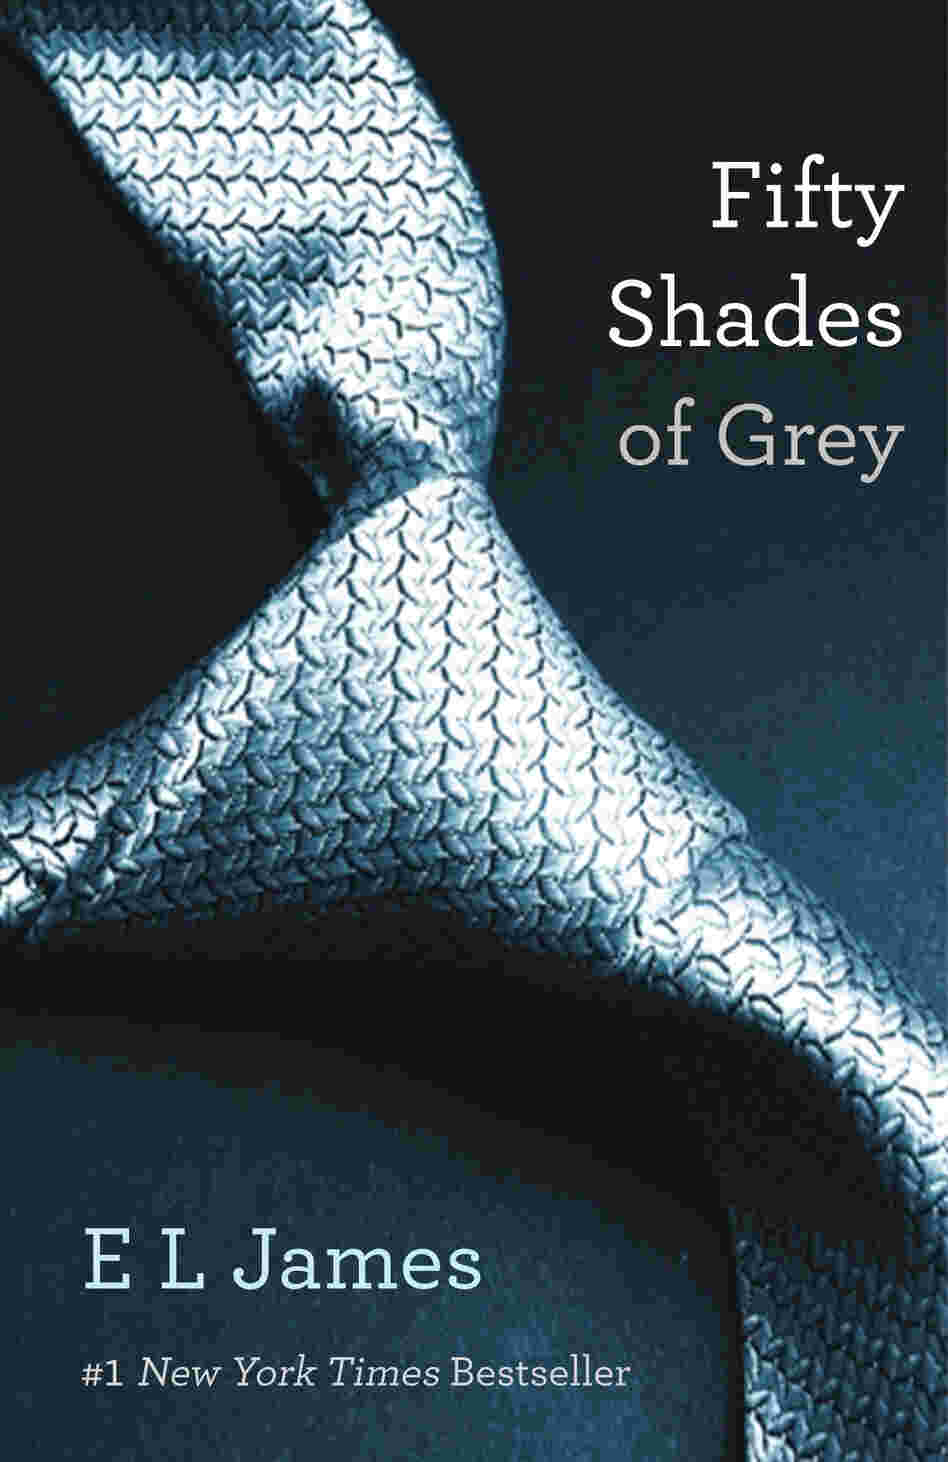 50 Shades of Crap